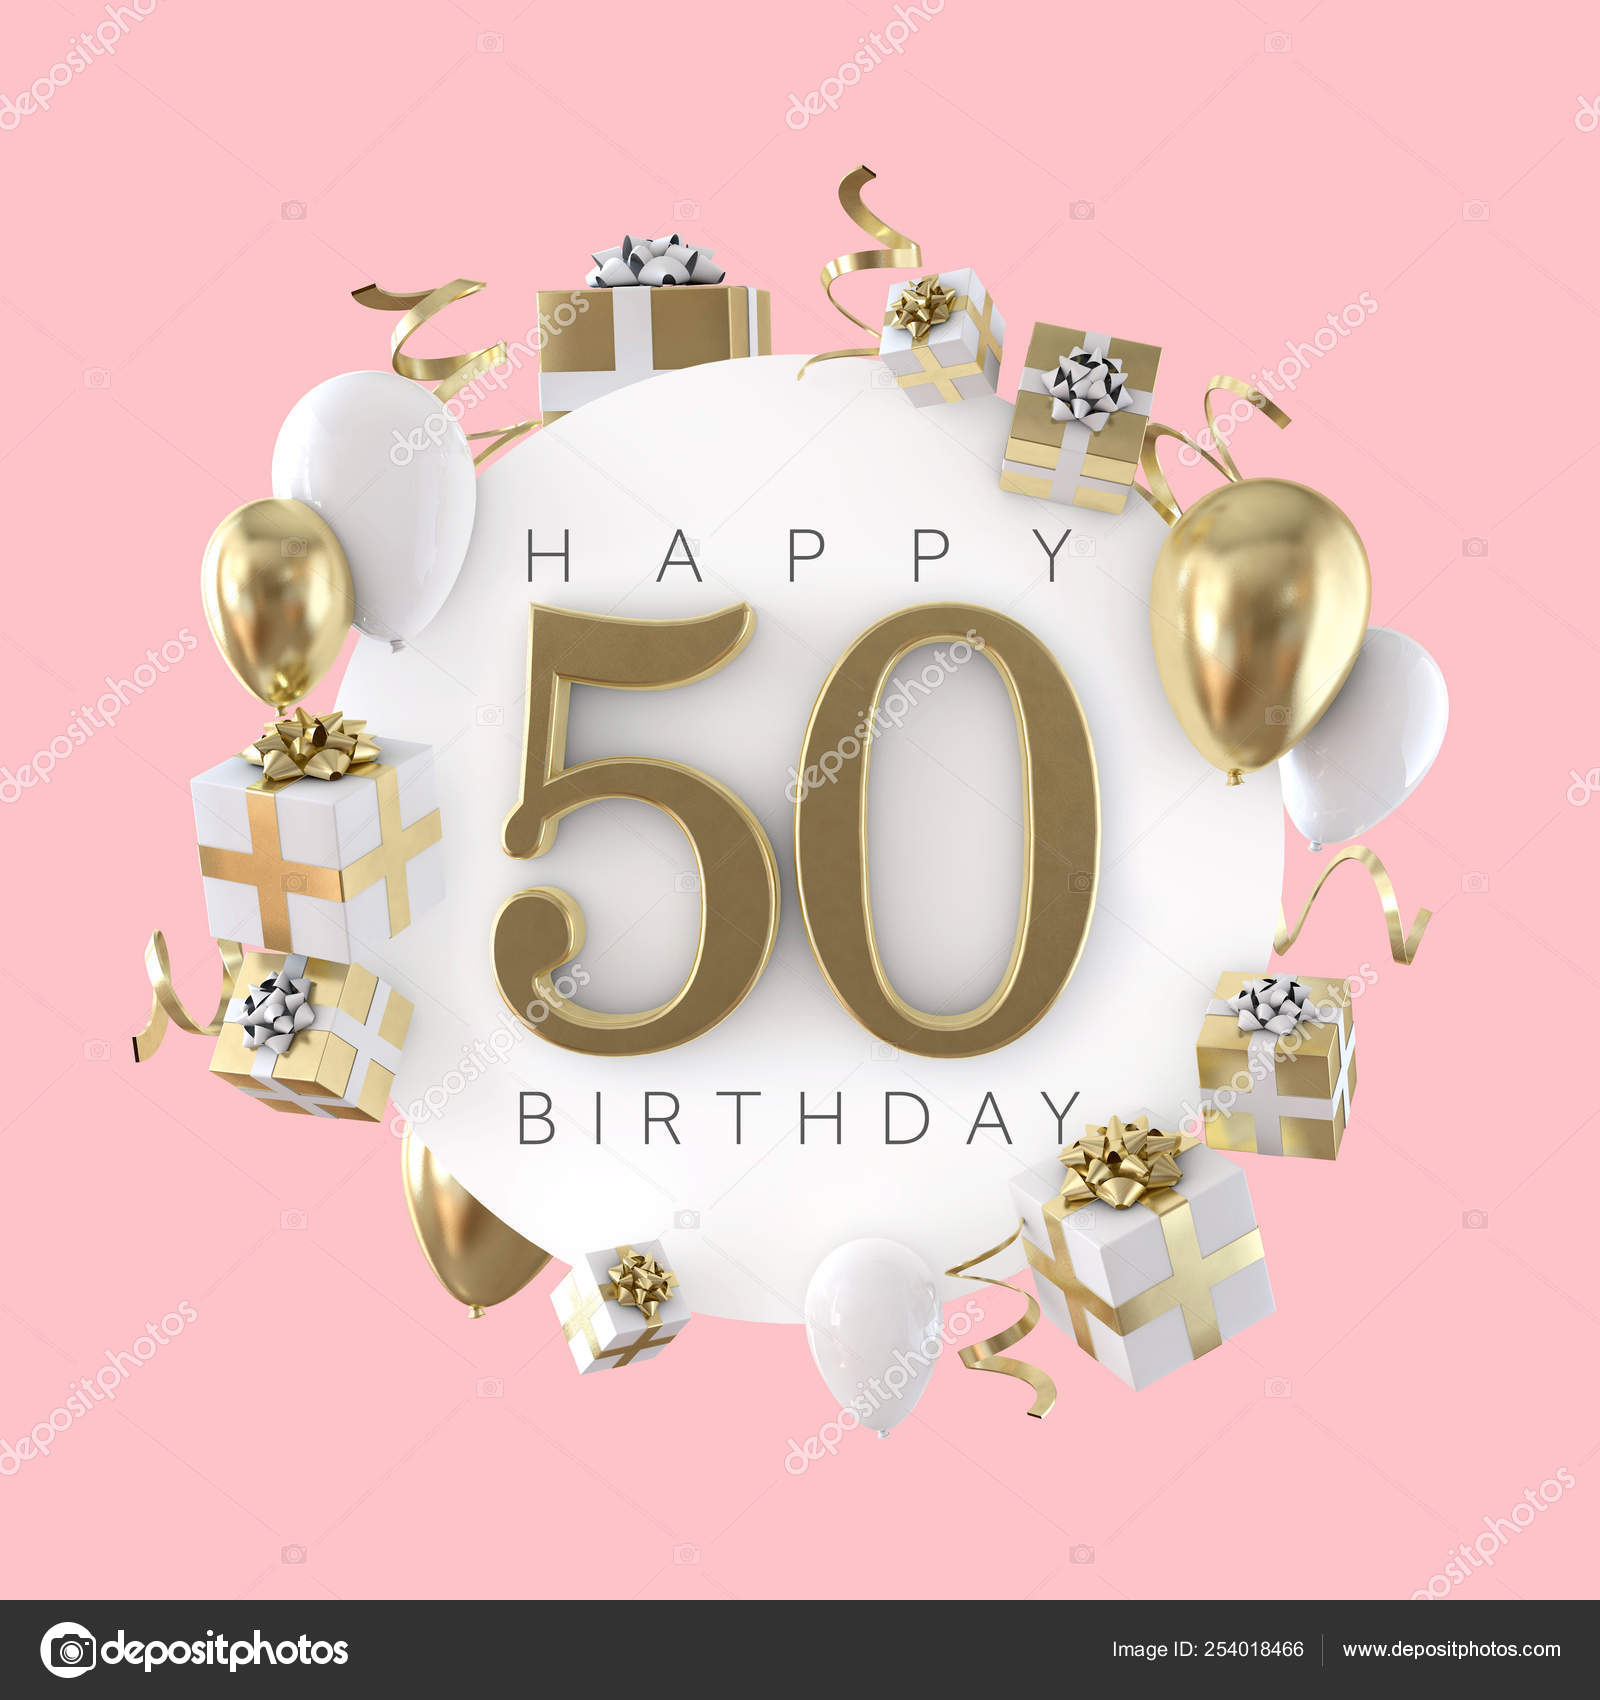 Happy 50th Birthday Party Composition With Balloons And Presents 3d Render Stock Photo Image By C Inkdropcreative 254018466